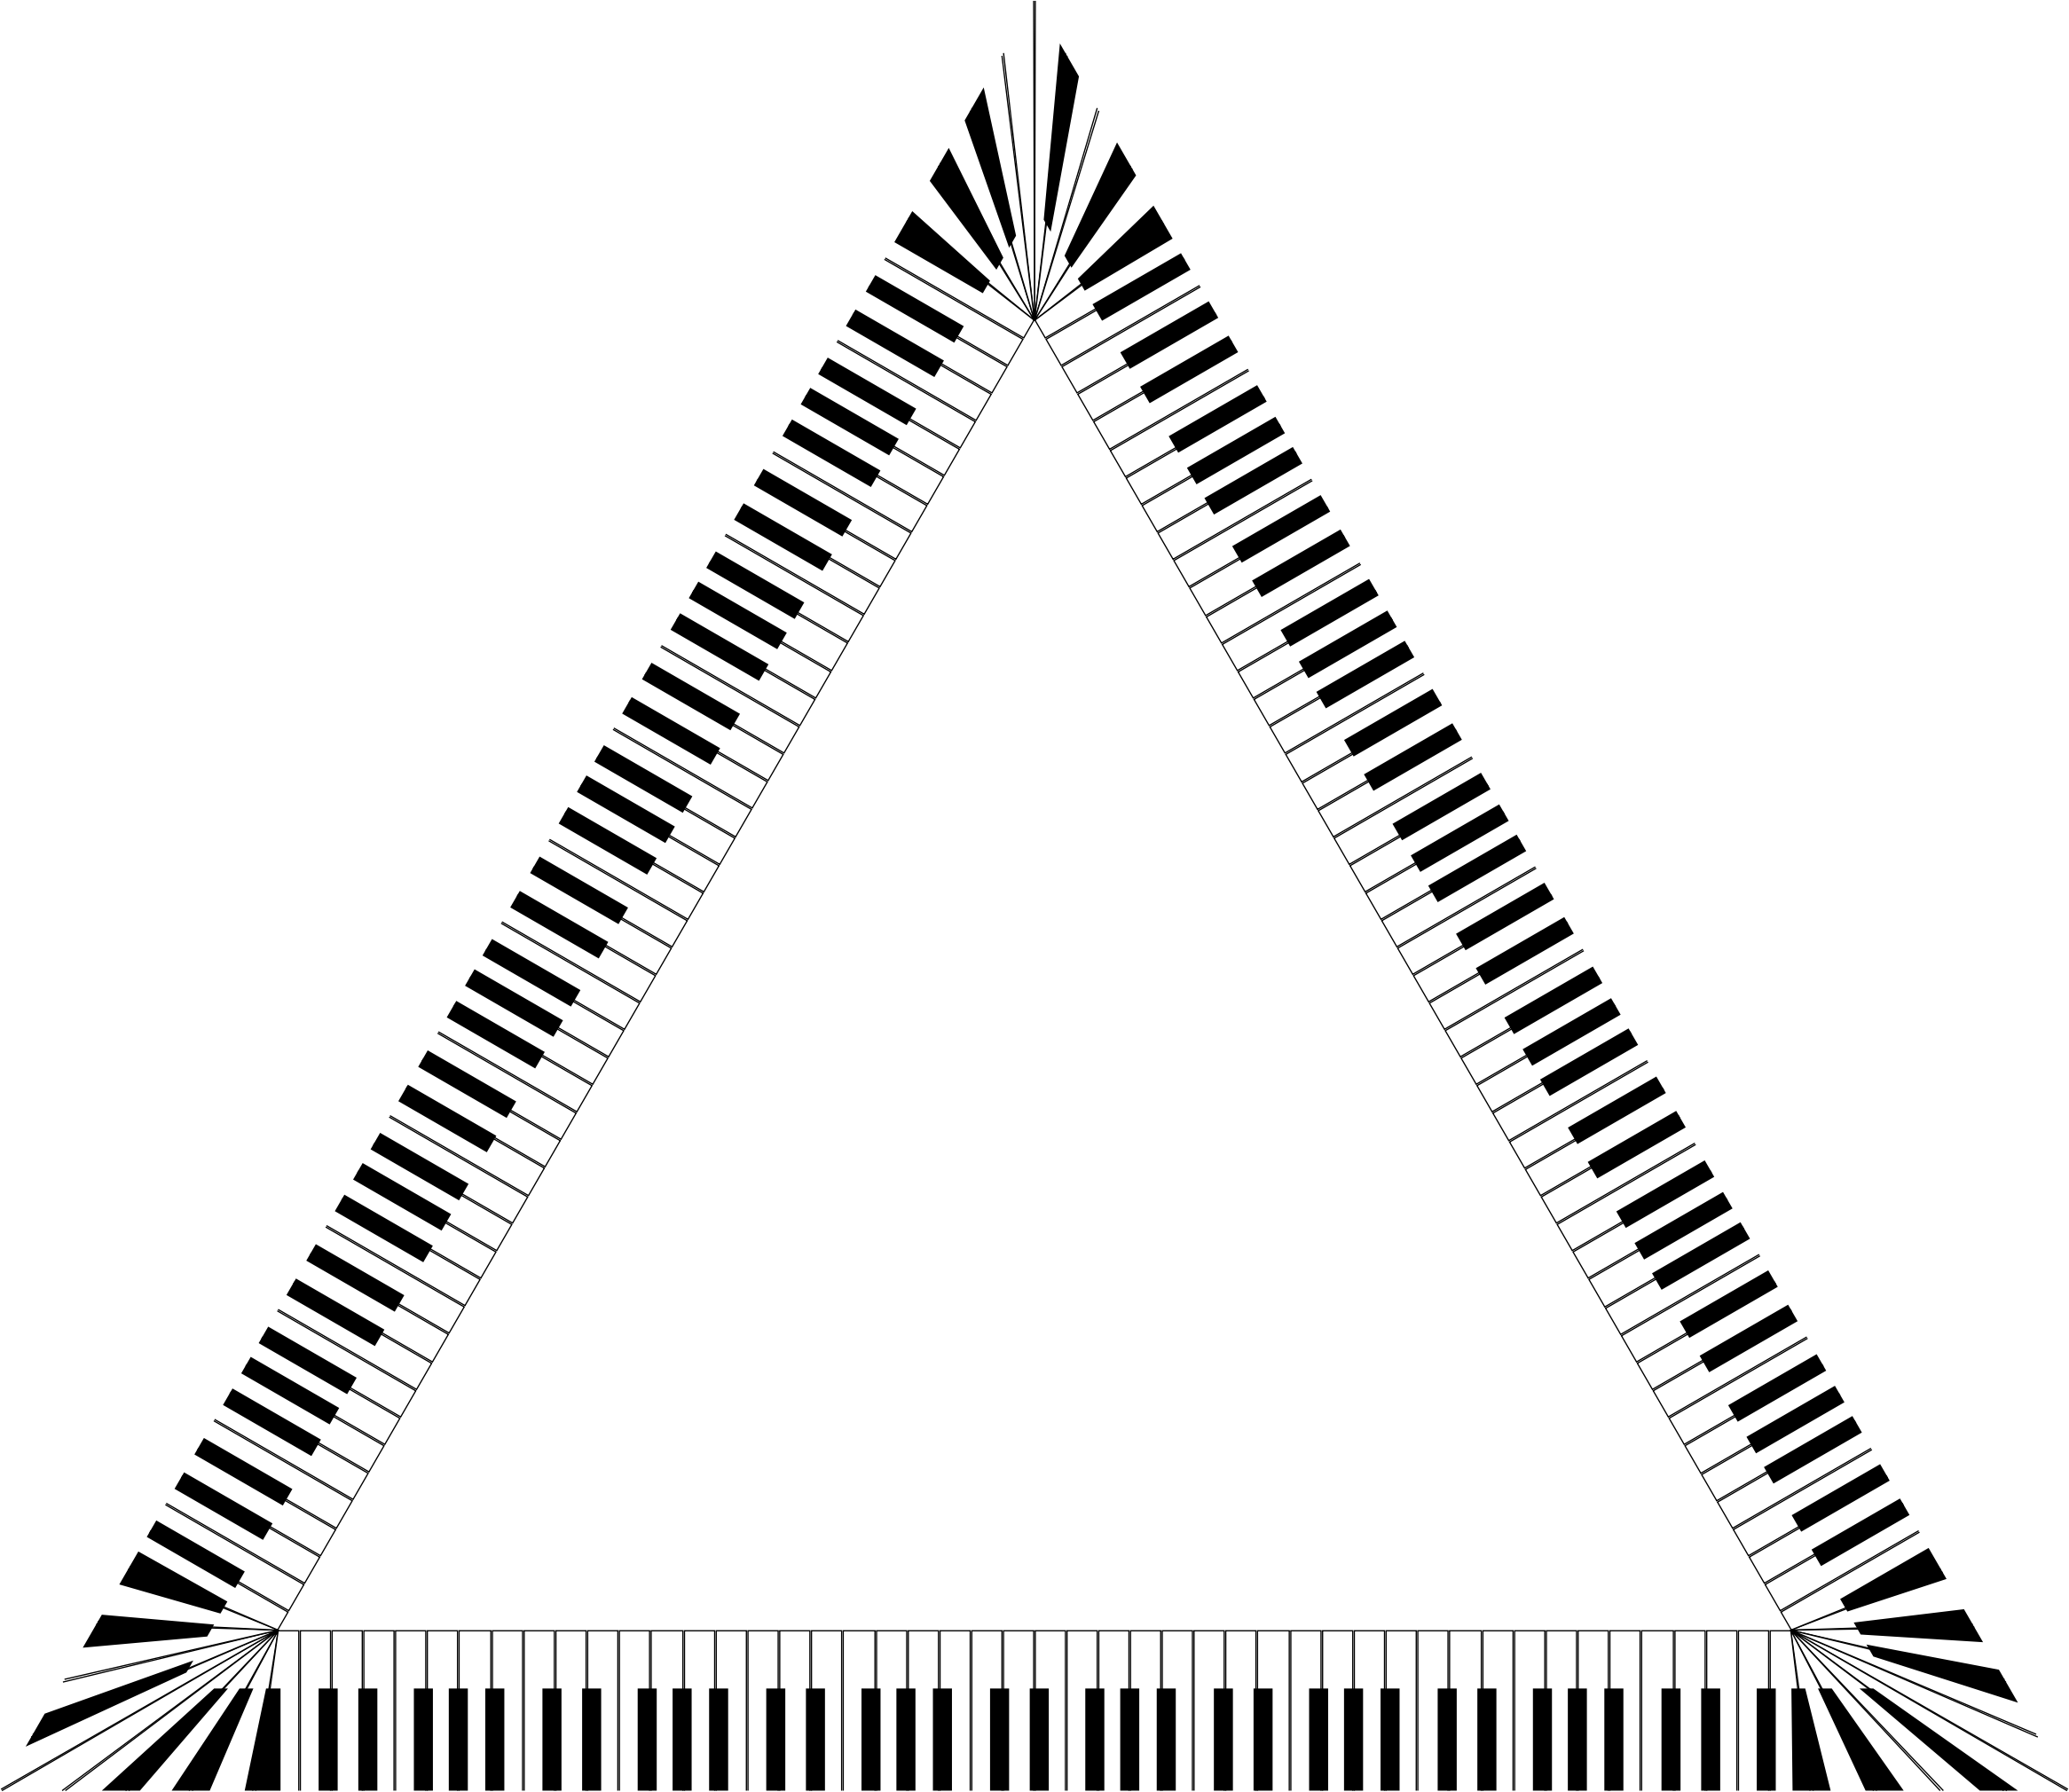 Piano Keys Triangle by GDJ